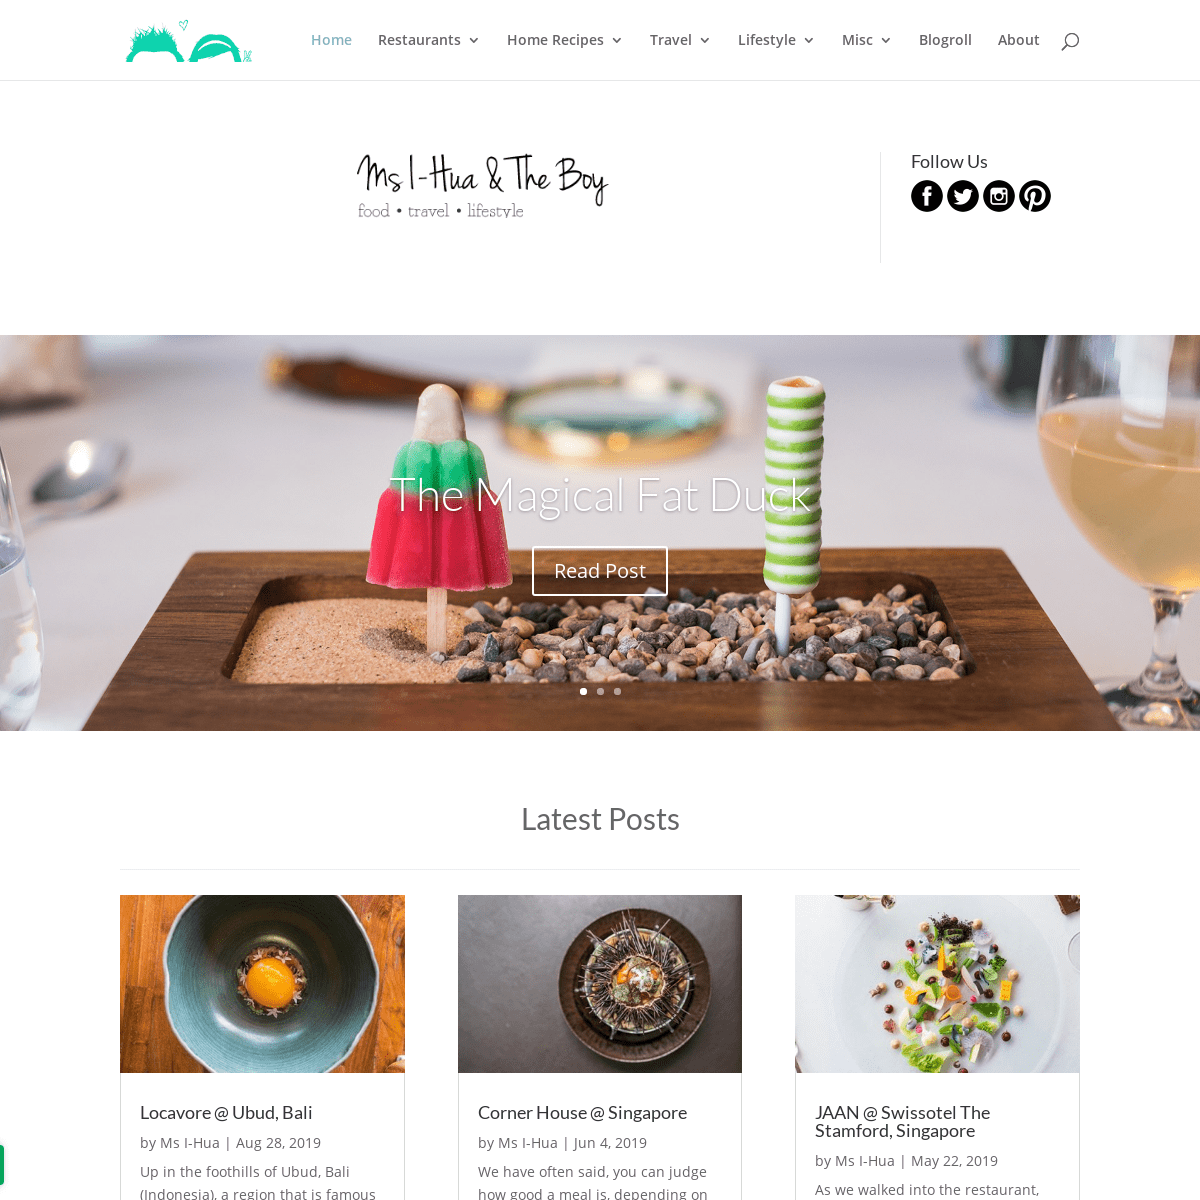 Ms I-Hua & The Boy - A Food, Travel and Lifestyle blog based in Melbourne